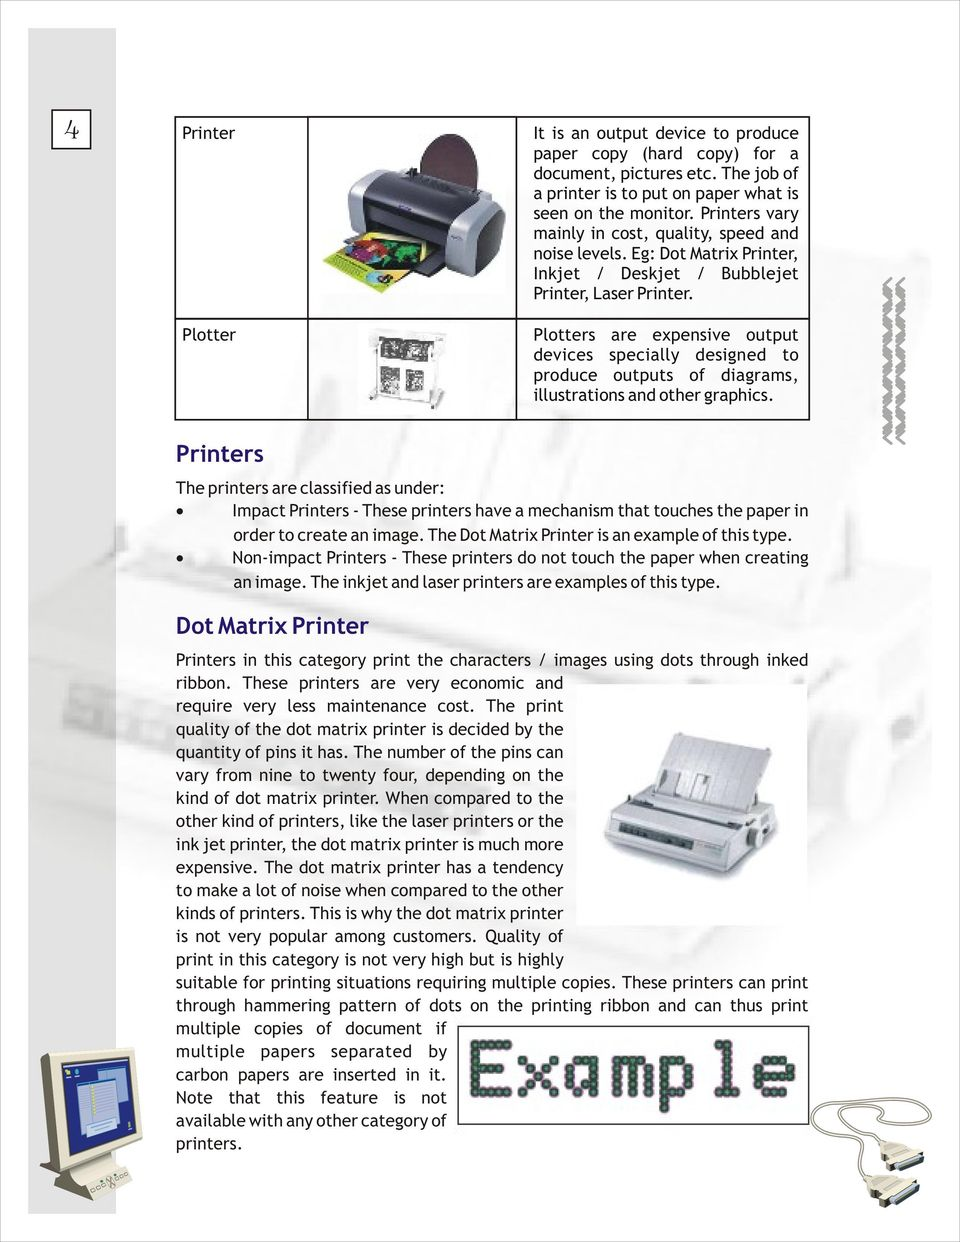 Plotters are expensive output devices specially designed to produce outputs of diagrams, illustrations and other graphics.